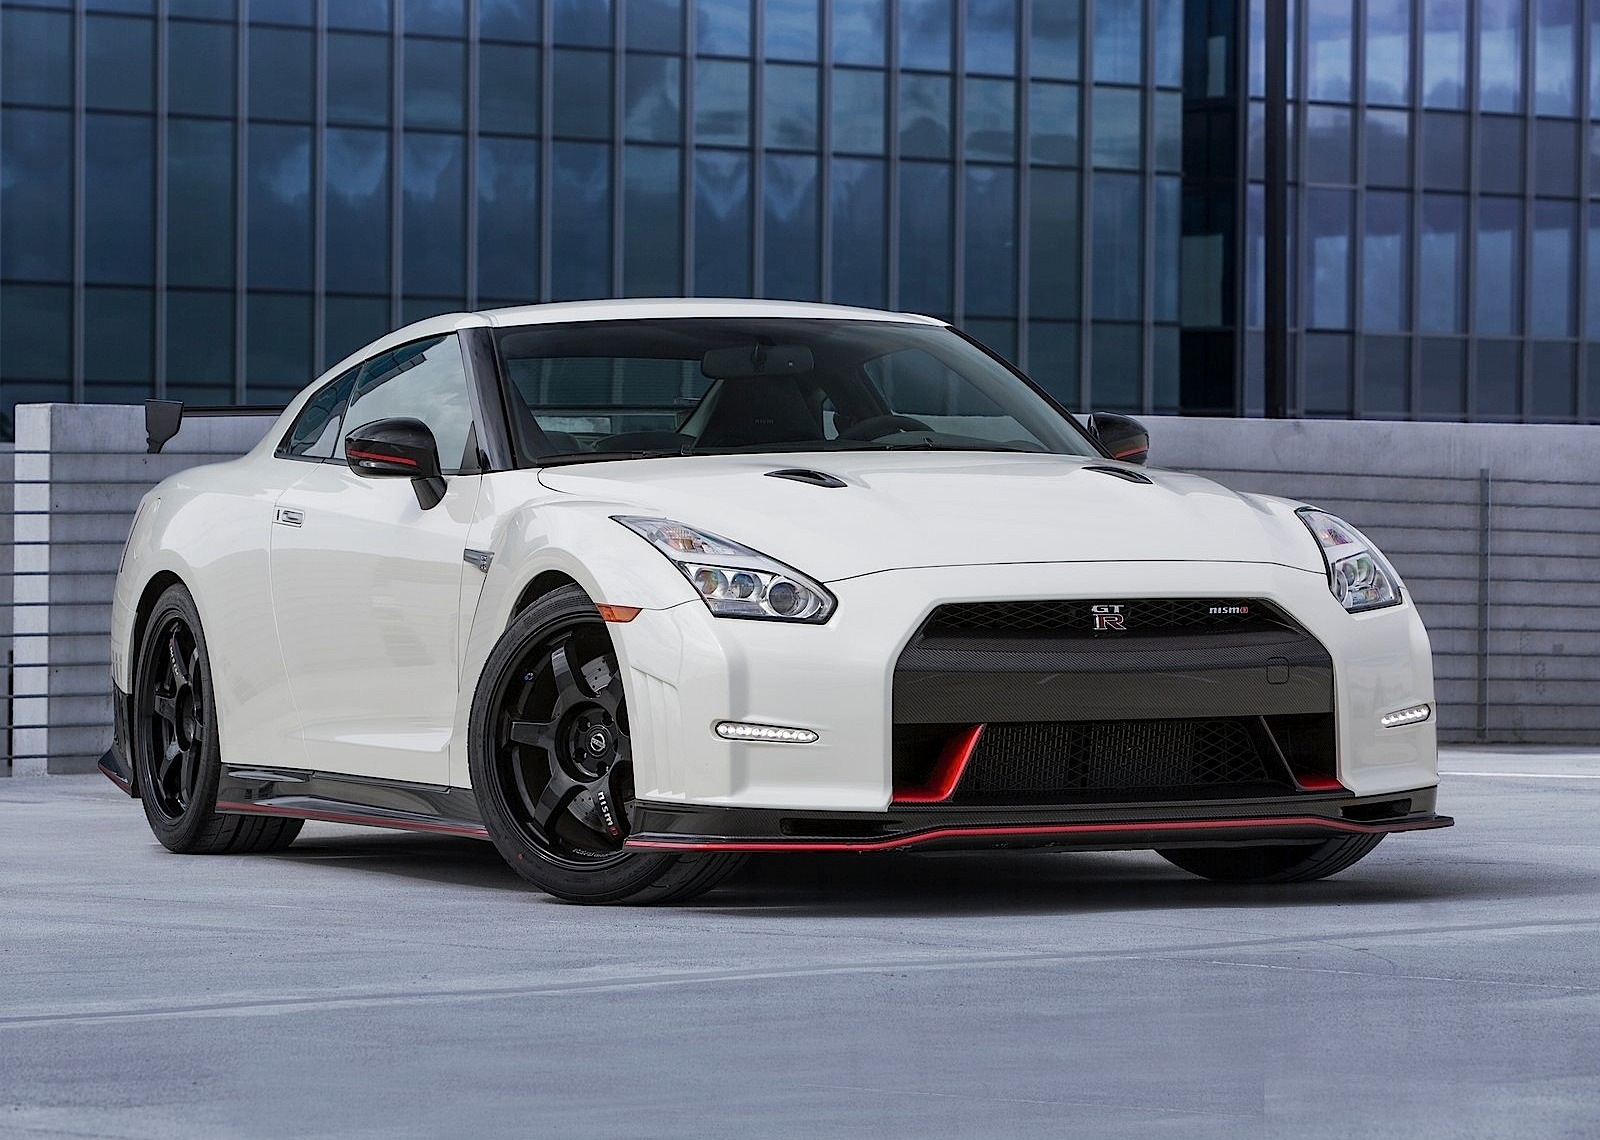 nissan gt r r35 nismo specs 2014 2015 2016 2017 2018 autoevolution. Black Bedroom Furniture Sets. Home Design Ideas